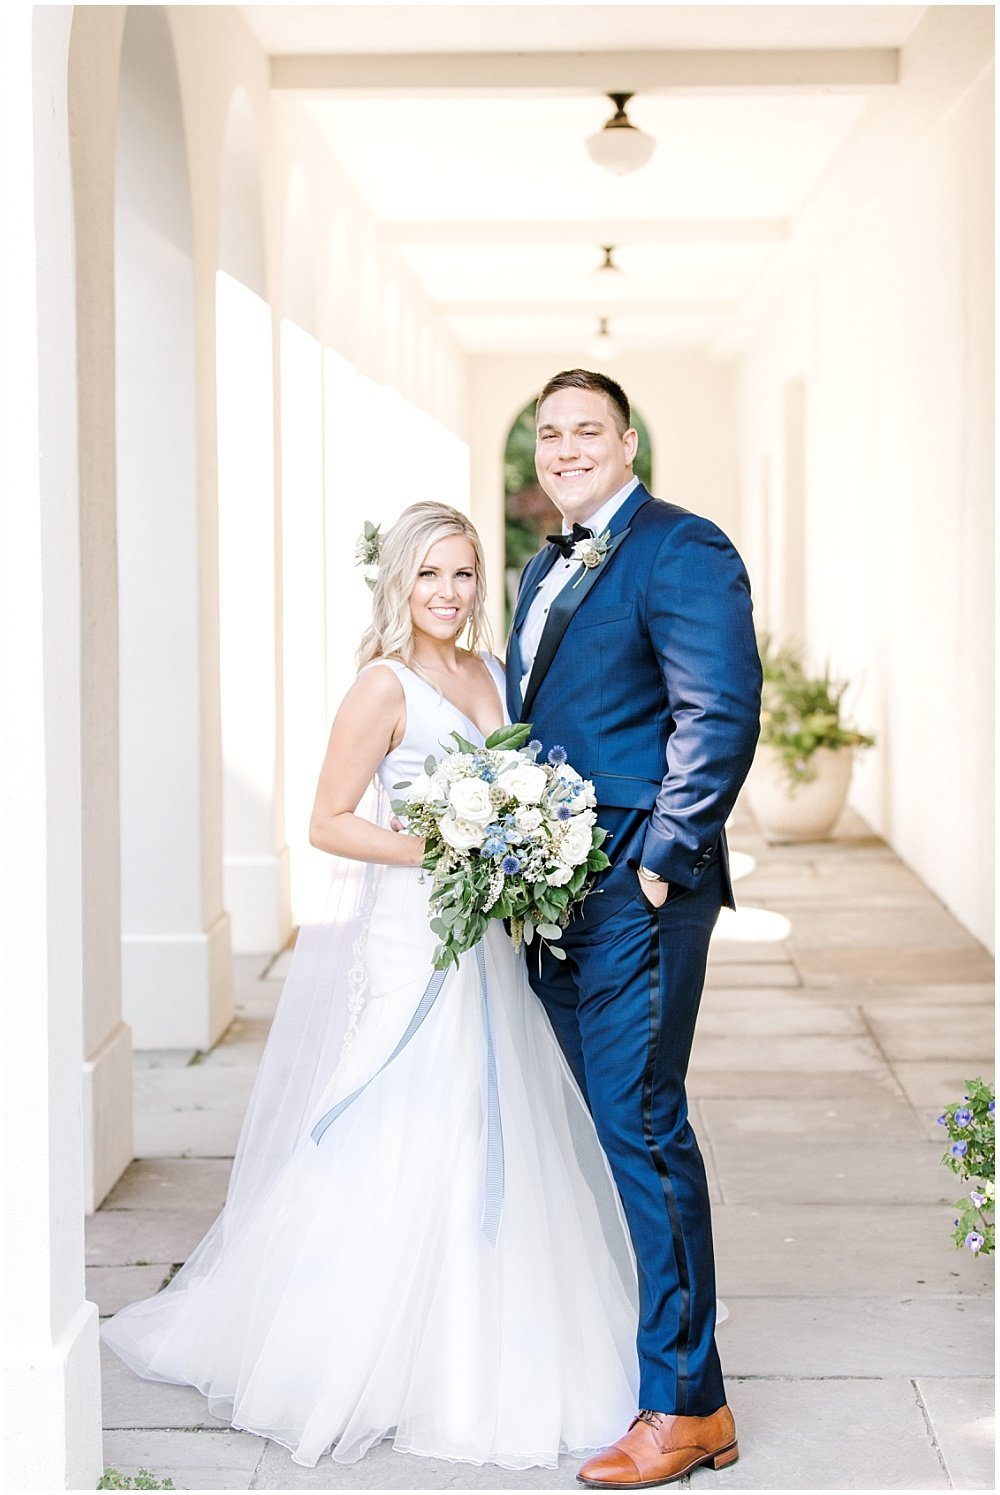 NFL-Player-Nick-Martin-Indianapolis-Indiana-Wedding-The-Knot-Featured-Jessica-Dum-Wedding-Coordination-photo__0008